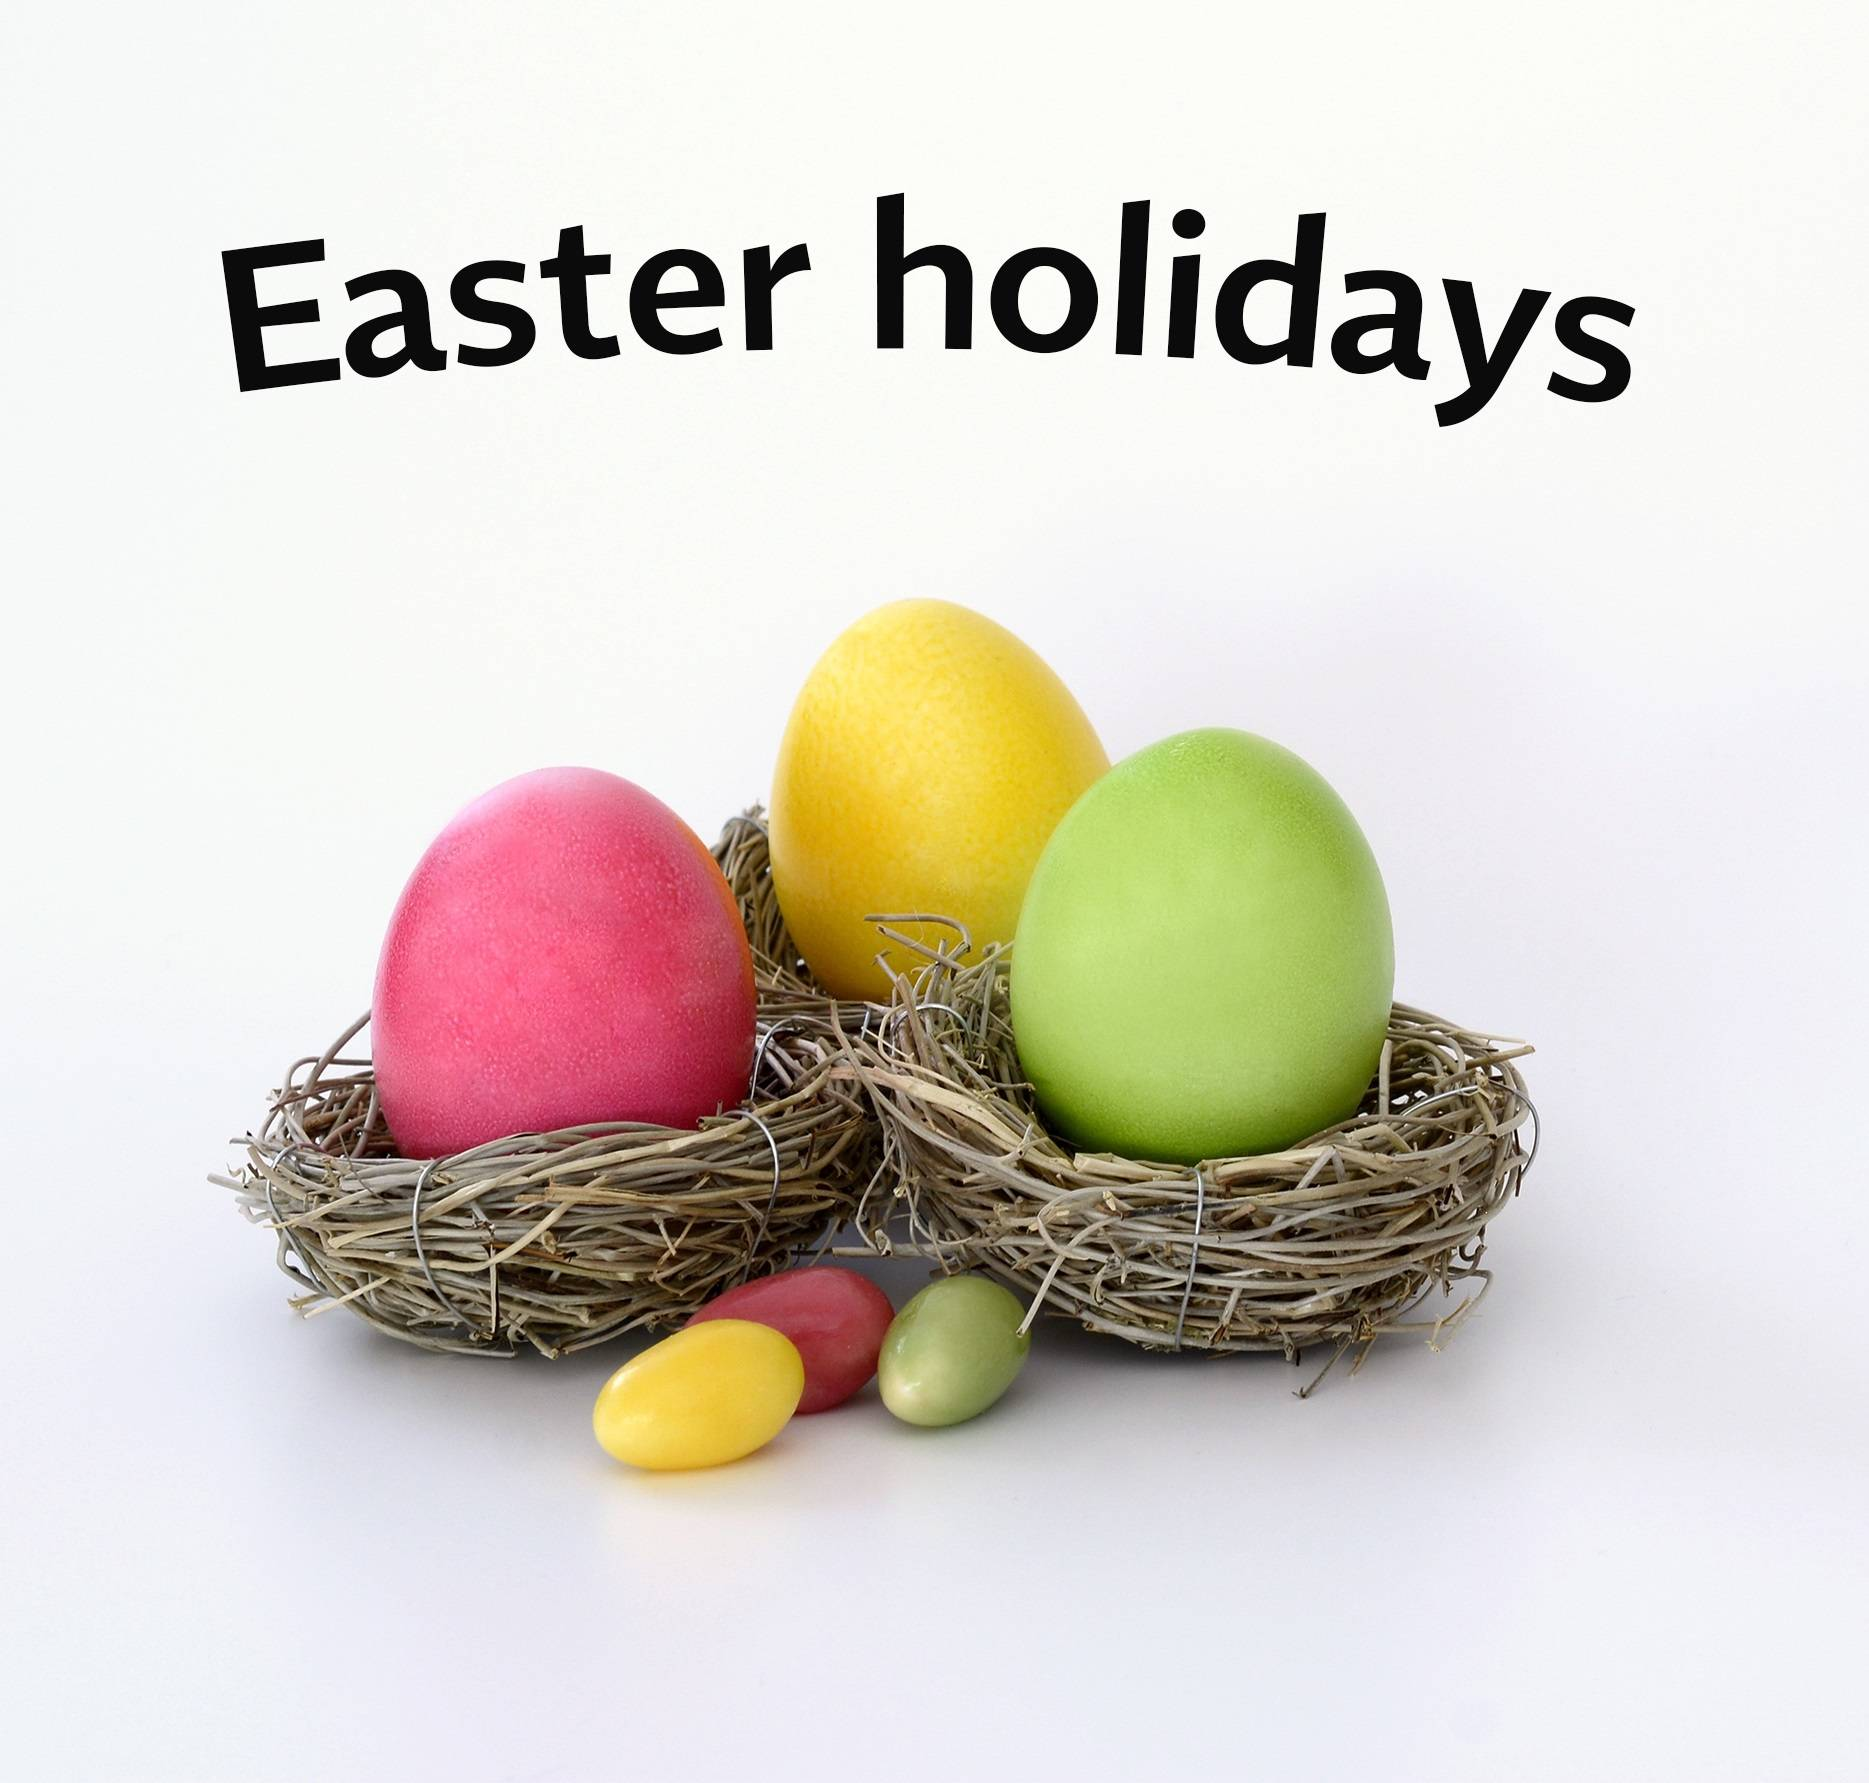 MILOS offices closed for the Easter holidays